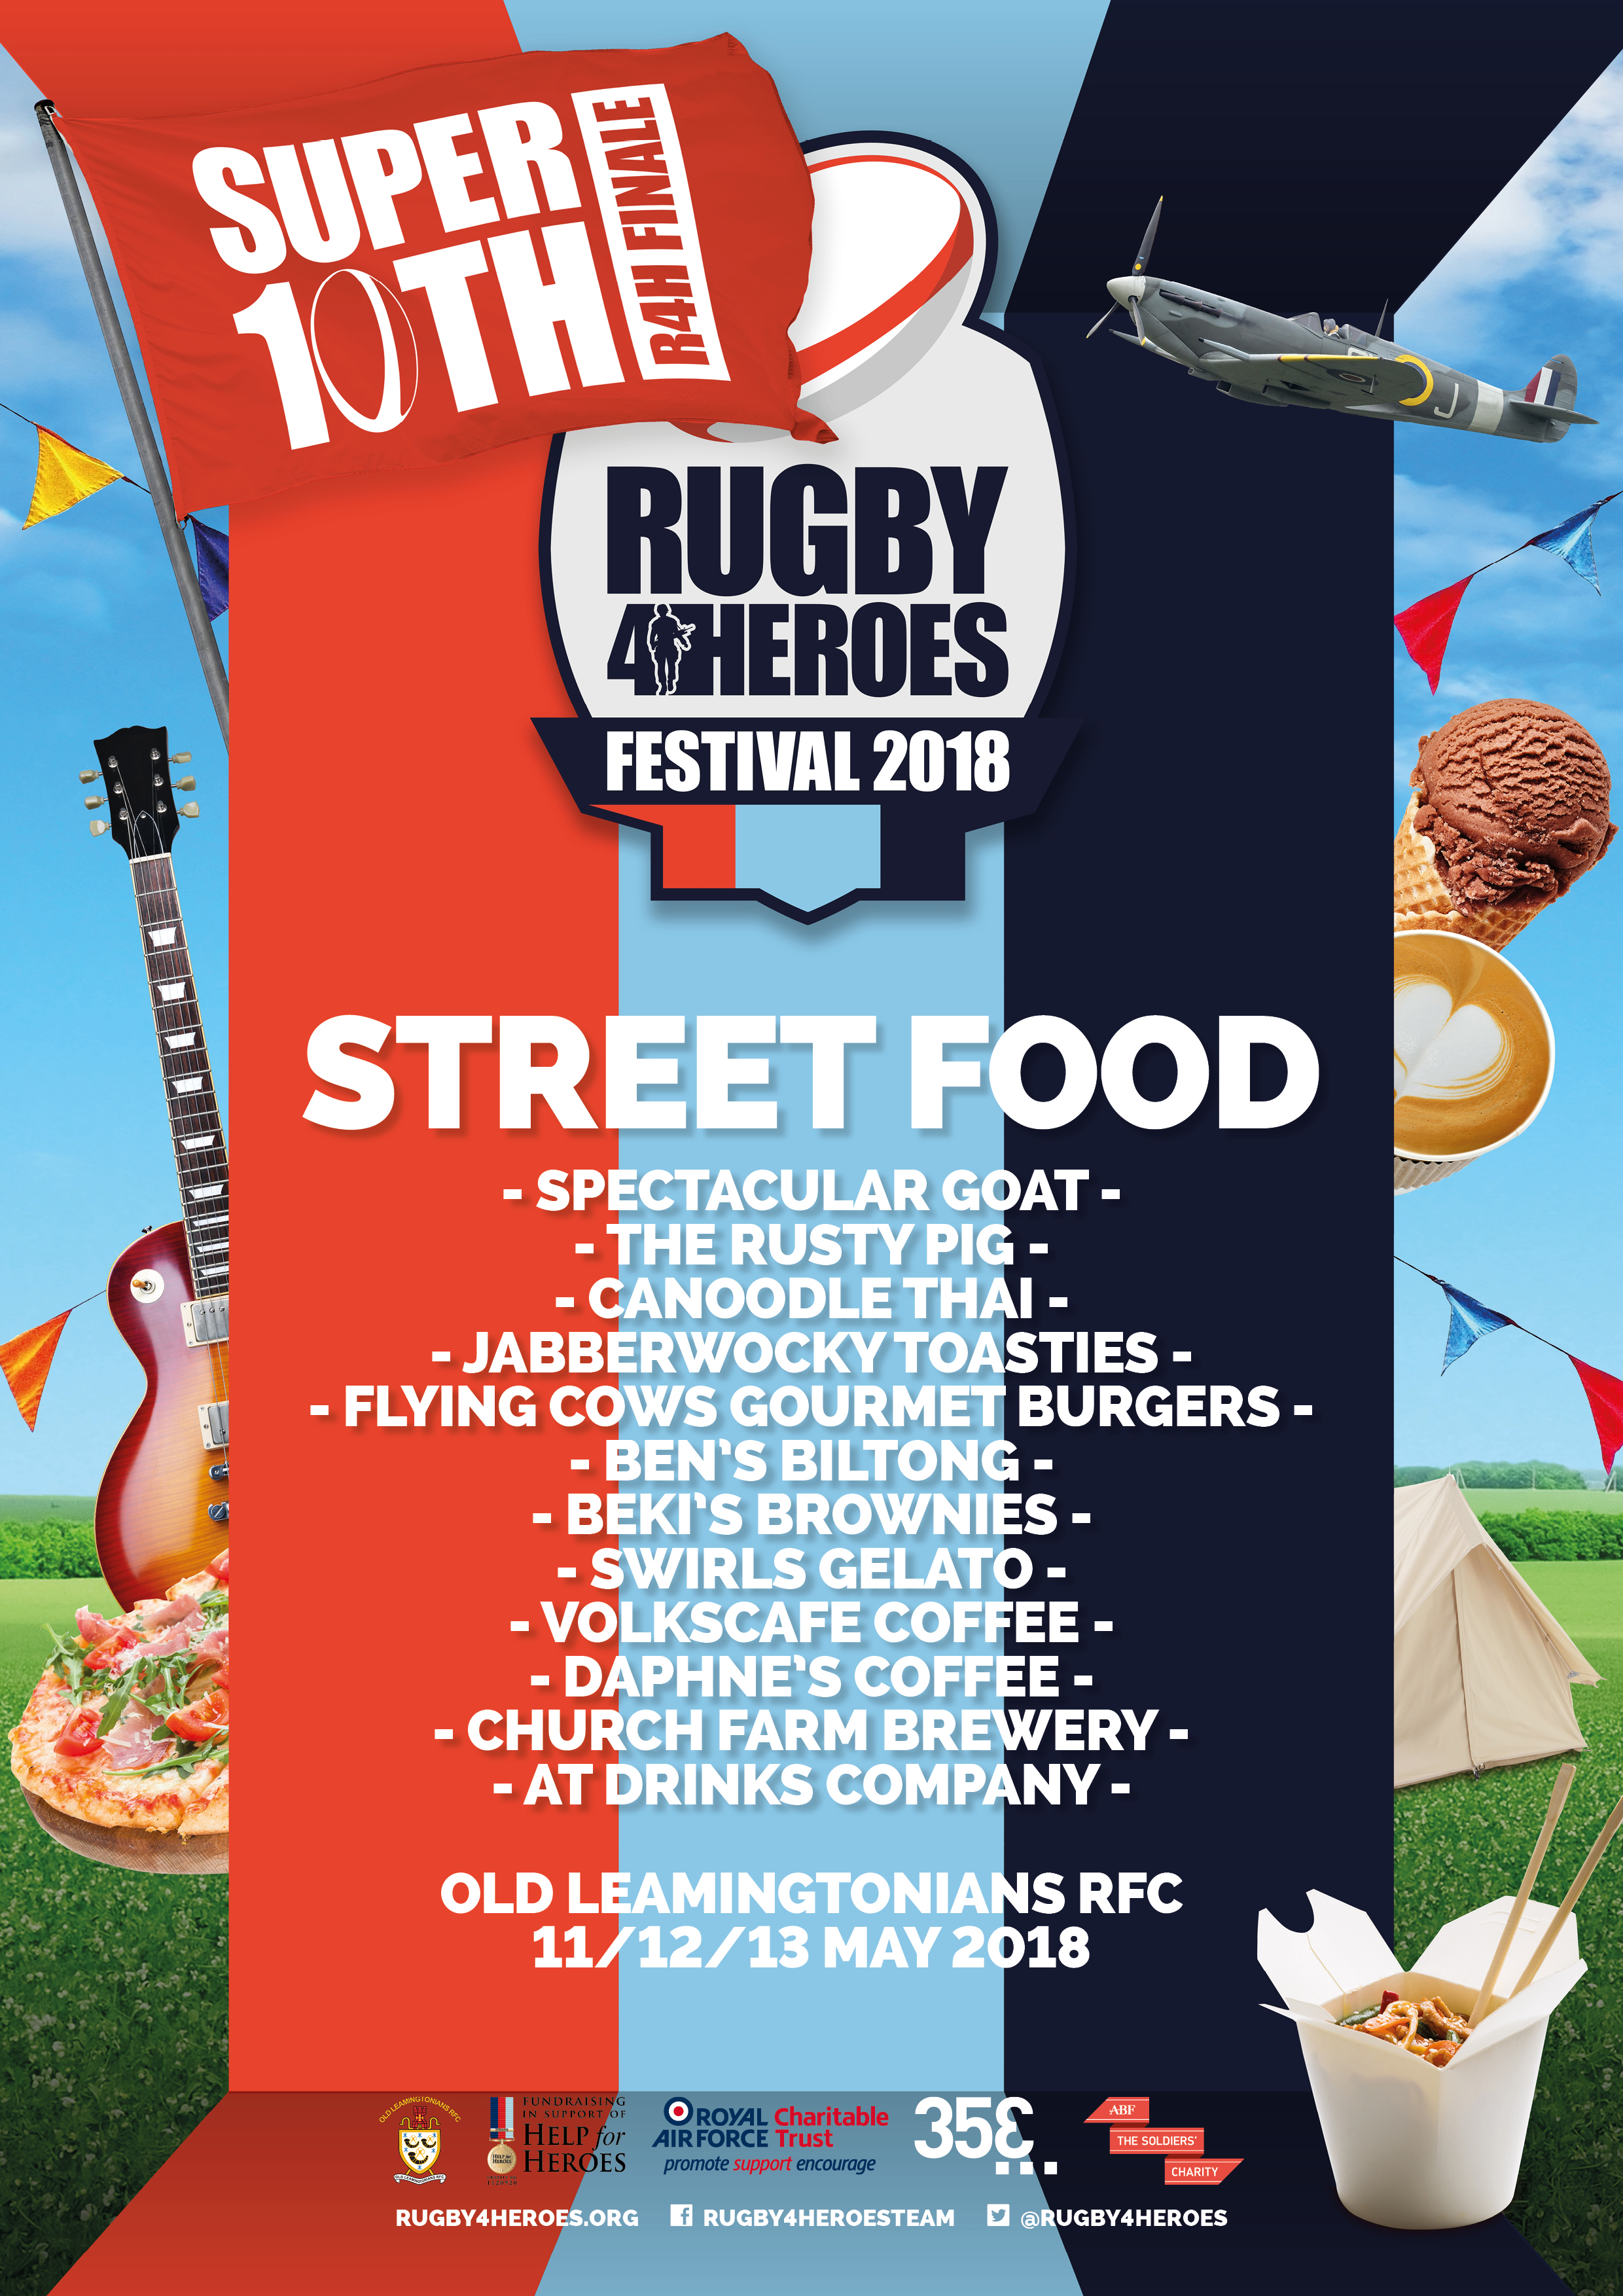 304564_Rugby4Heroes_Posters_A4_Street_Food